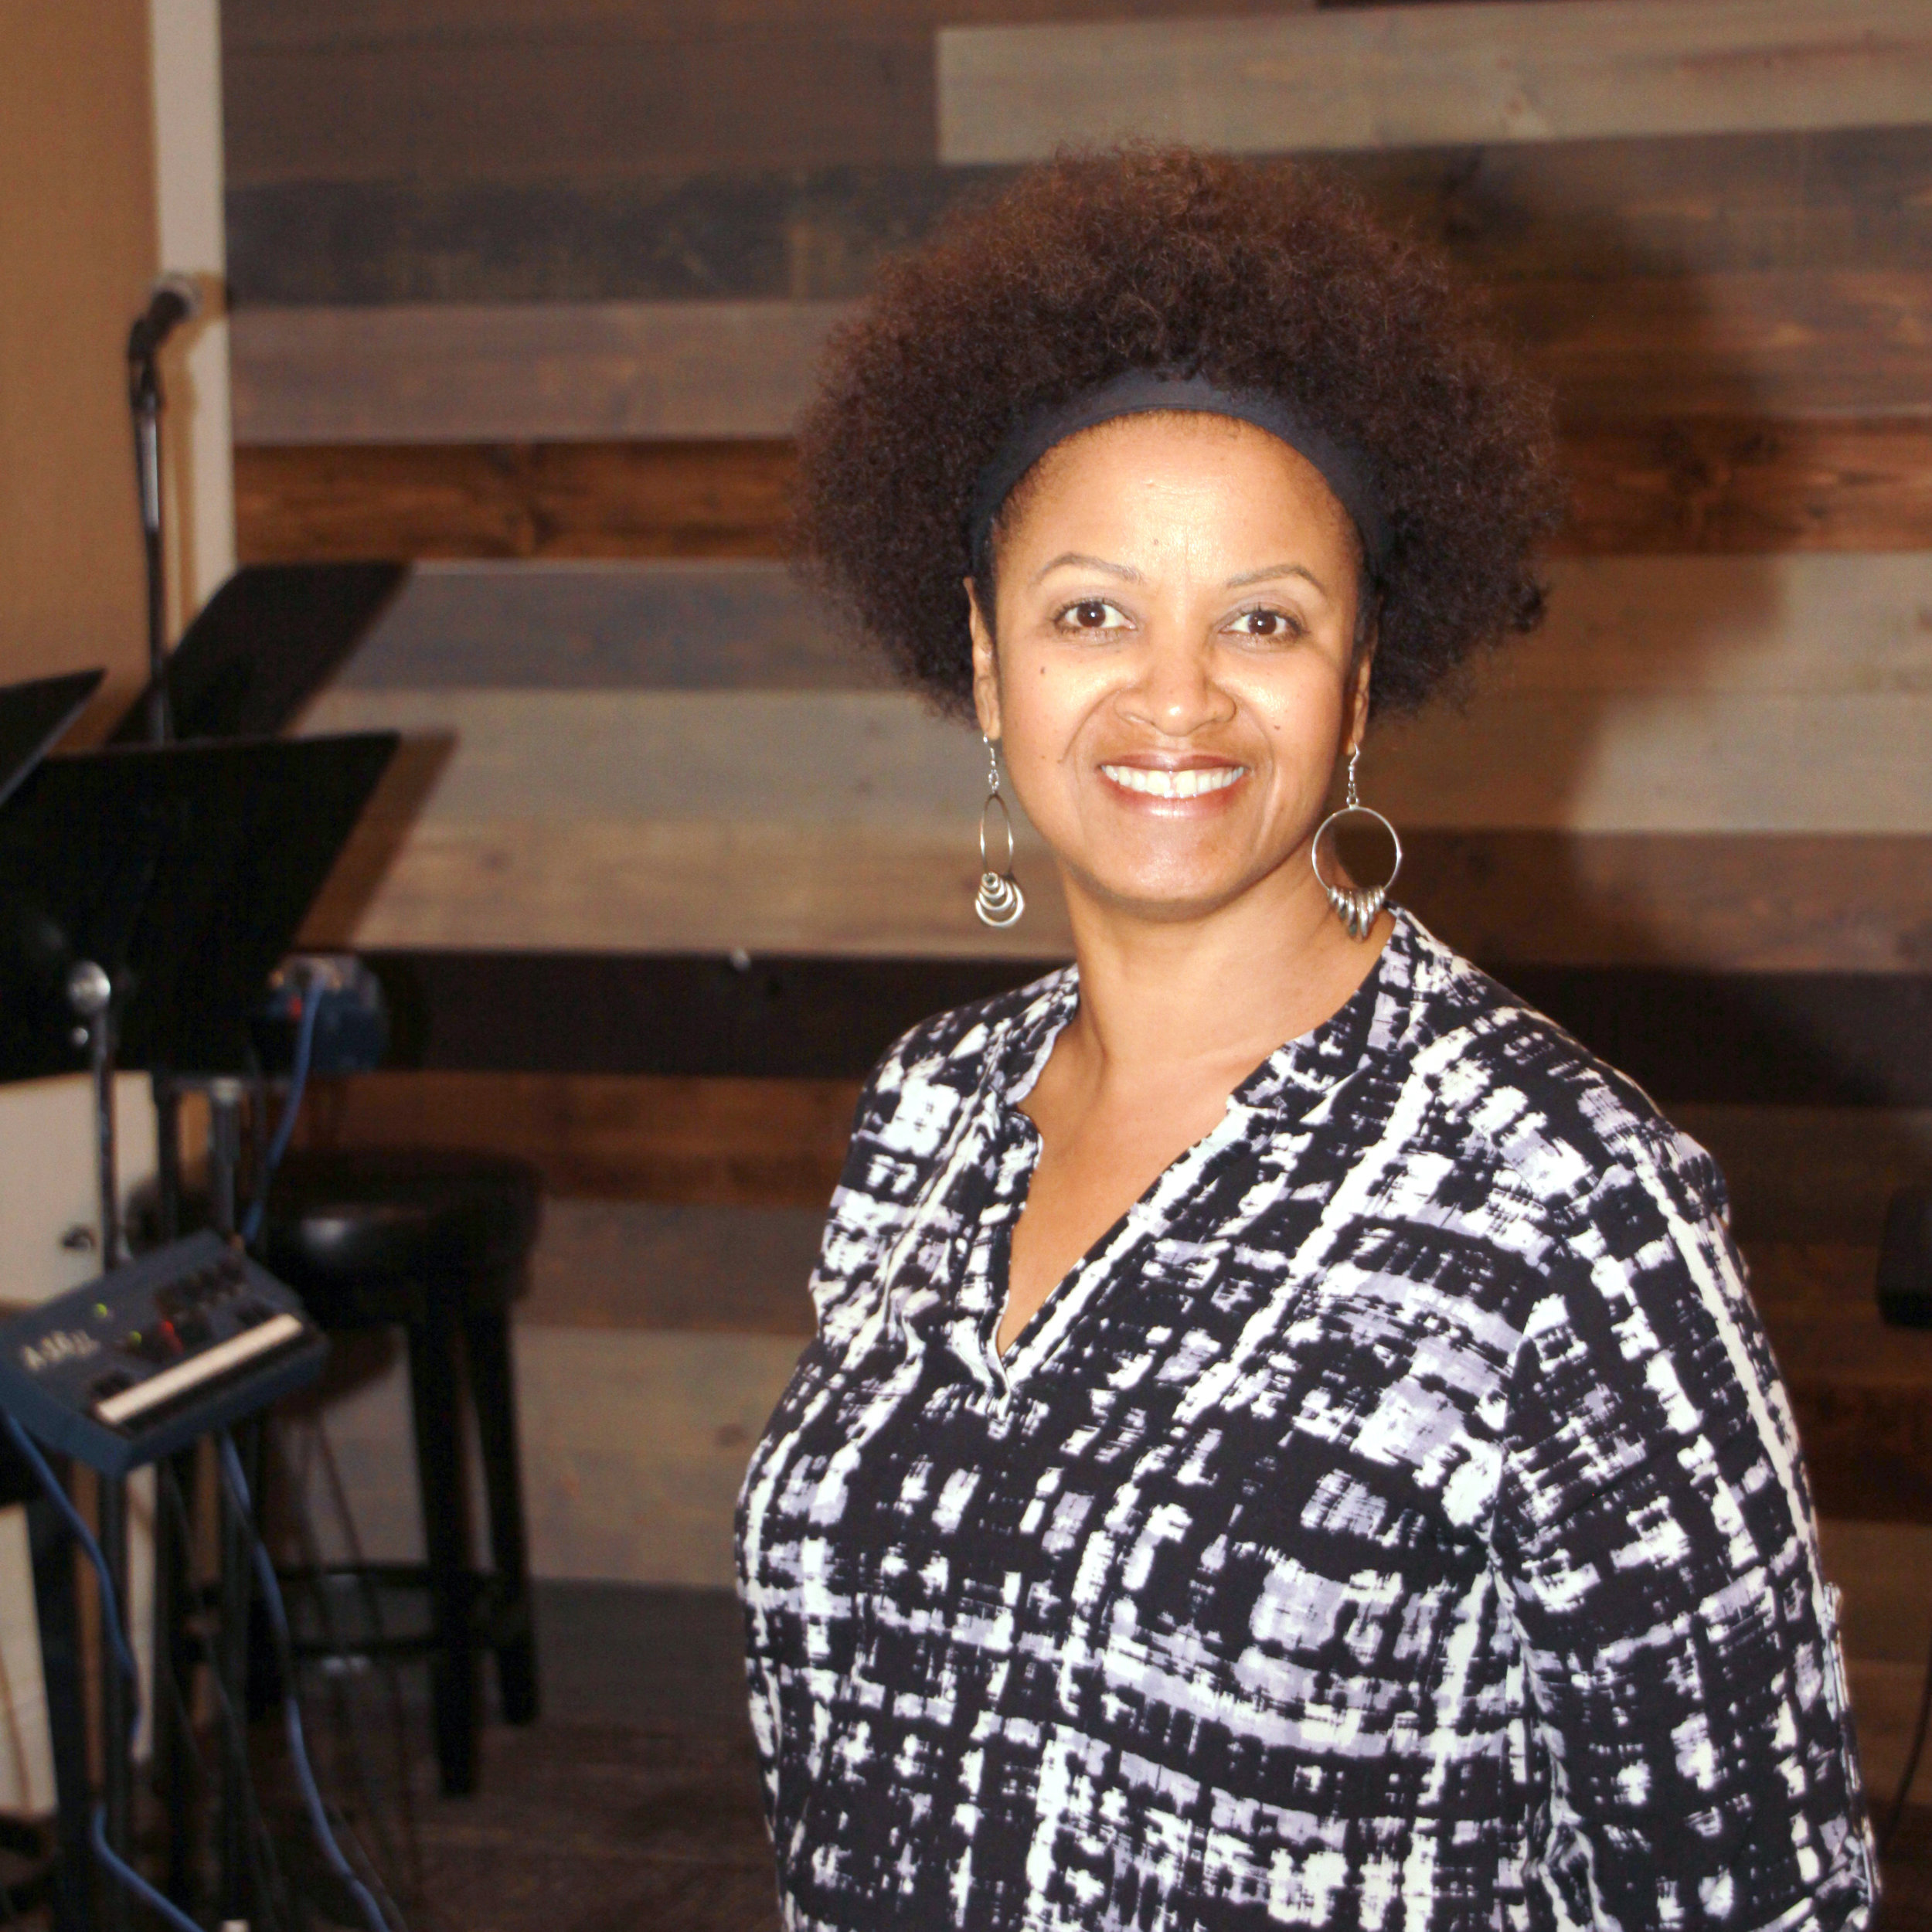 Kerry Vickers - Worship Leader, Prayer & Worship Ministry, Community Life